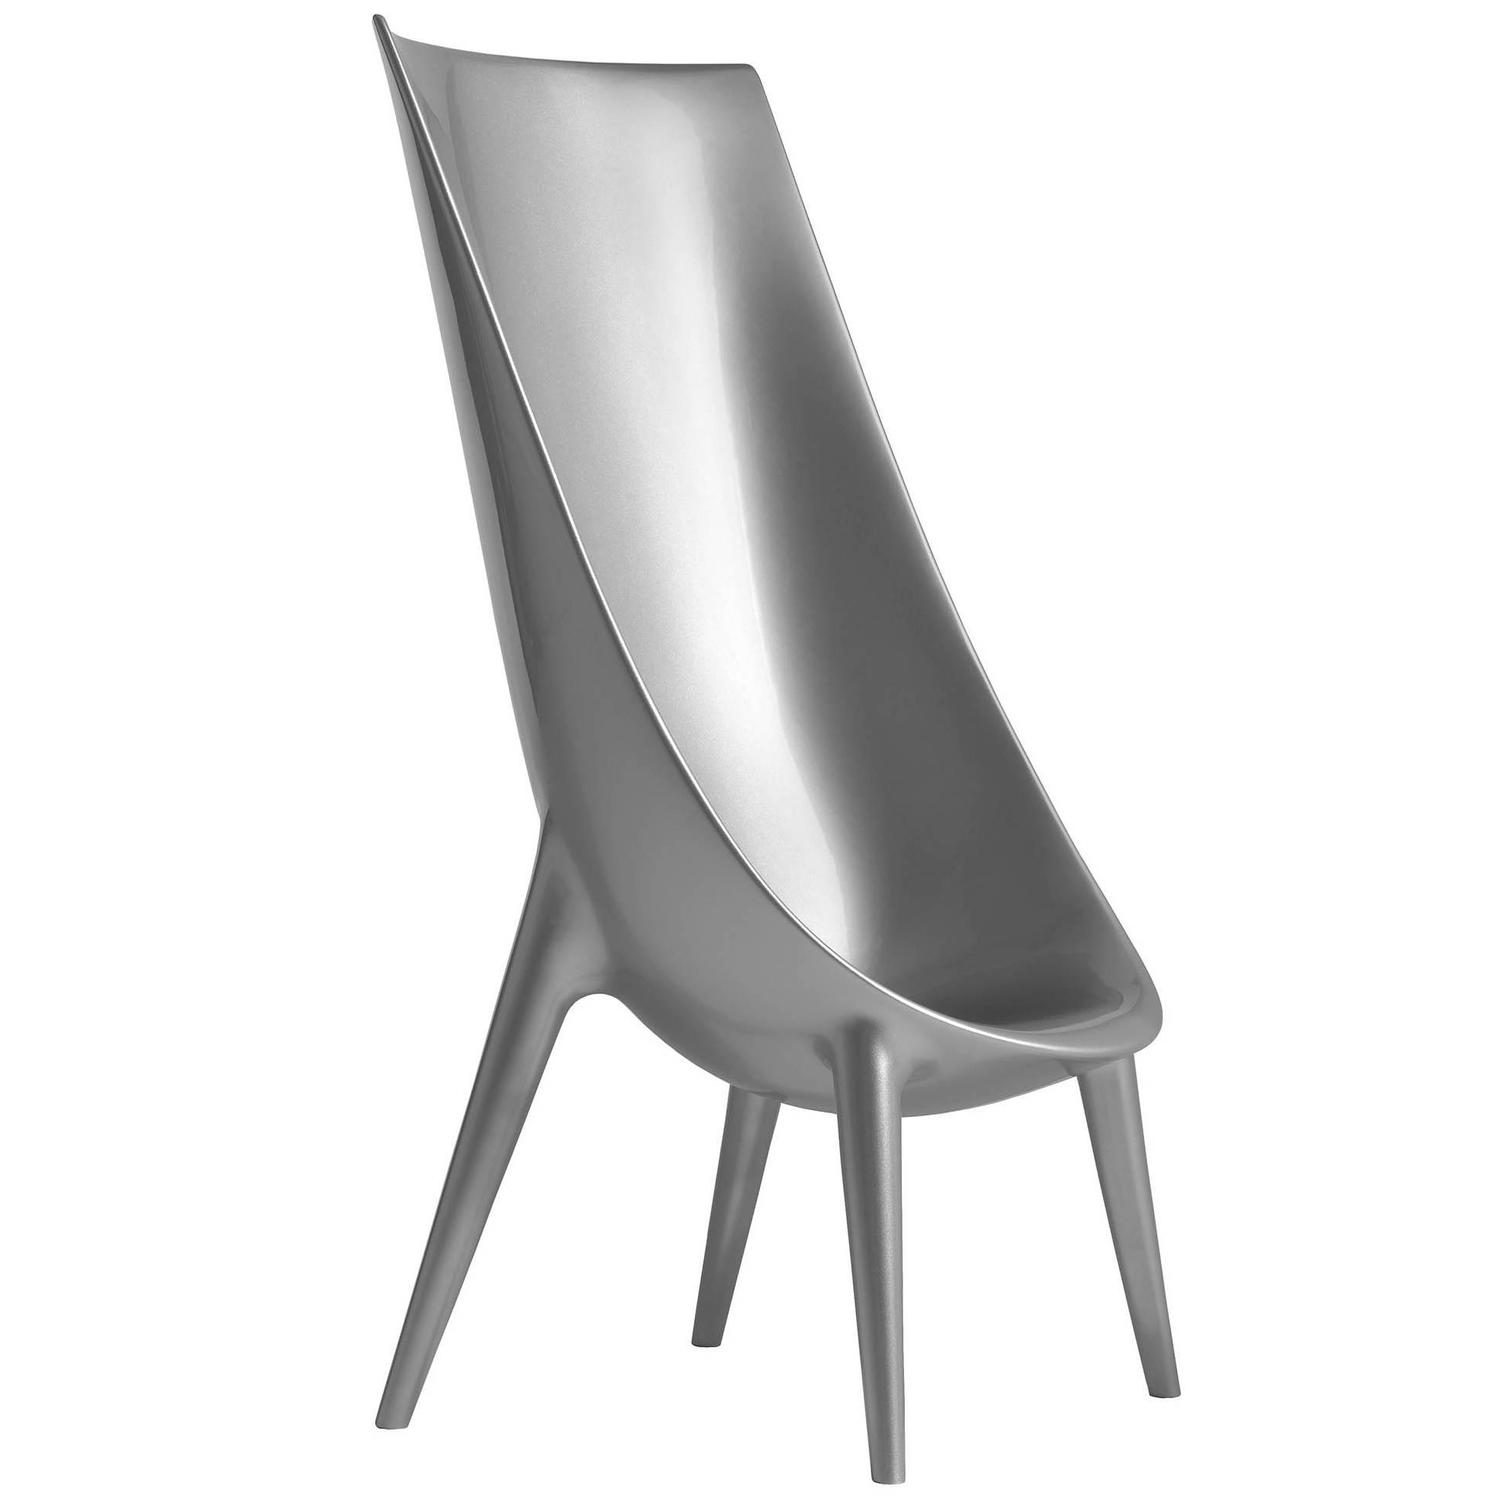 philippe starck chair out in high silver easychair org z